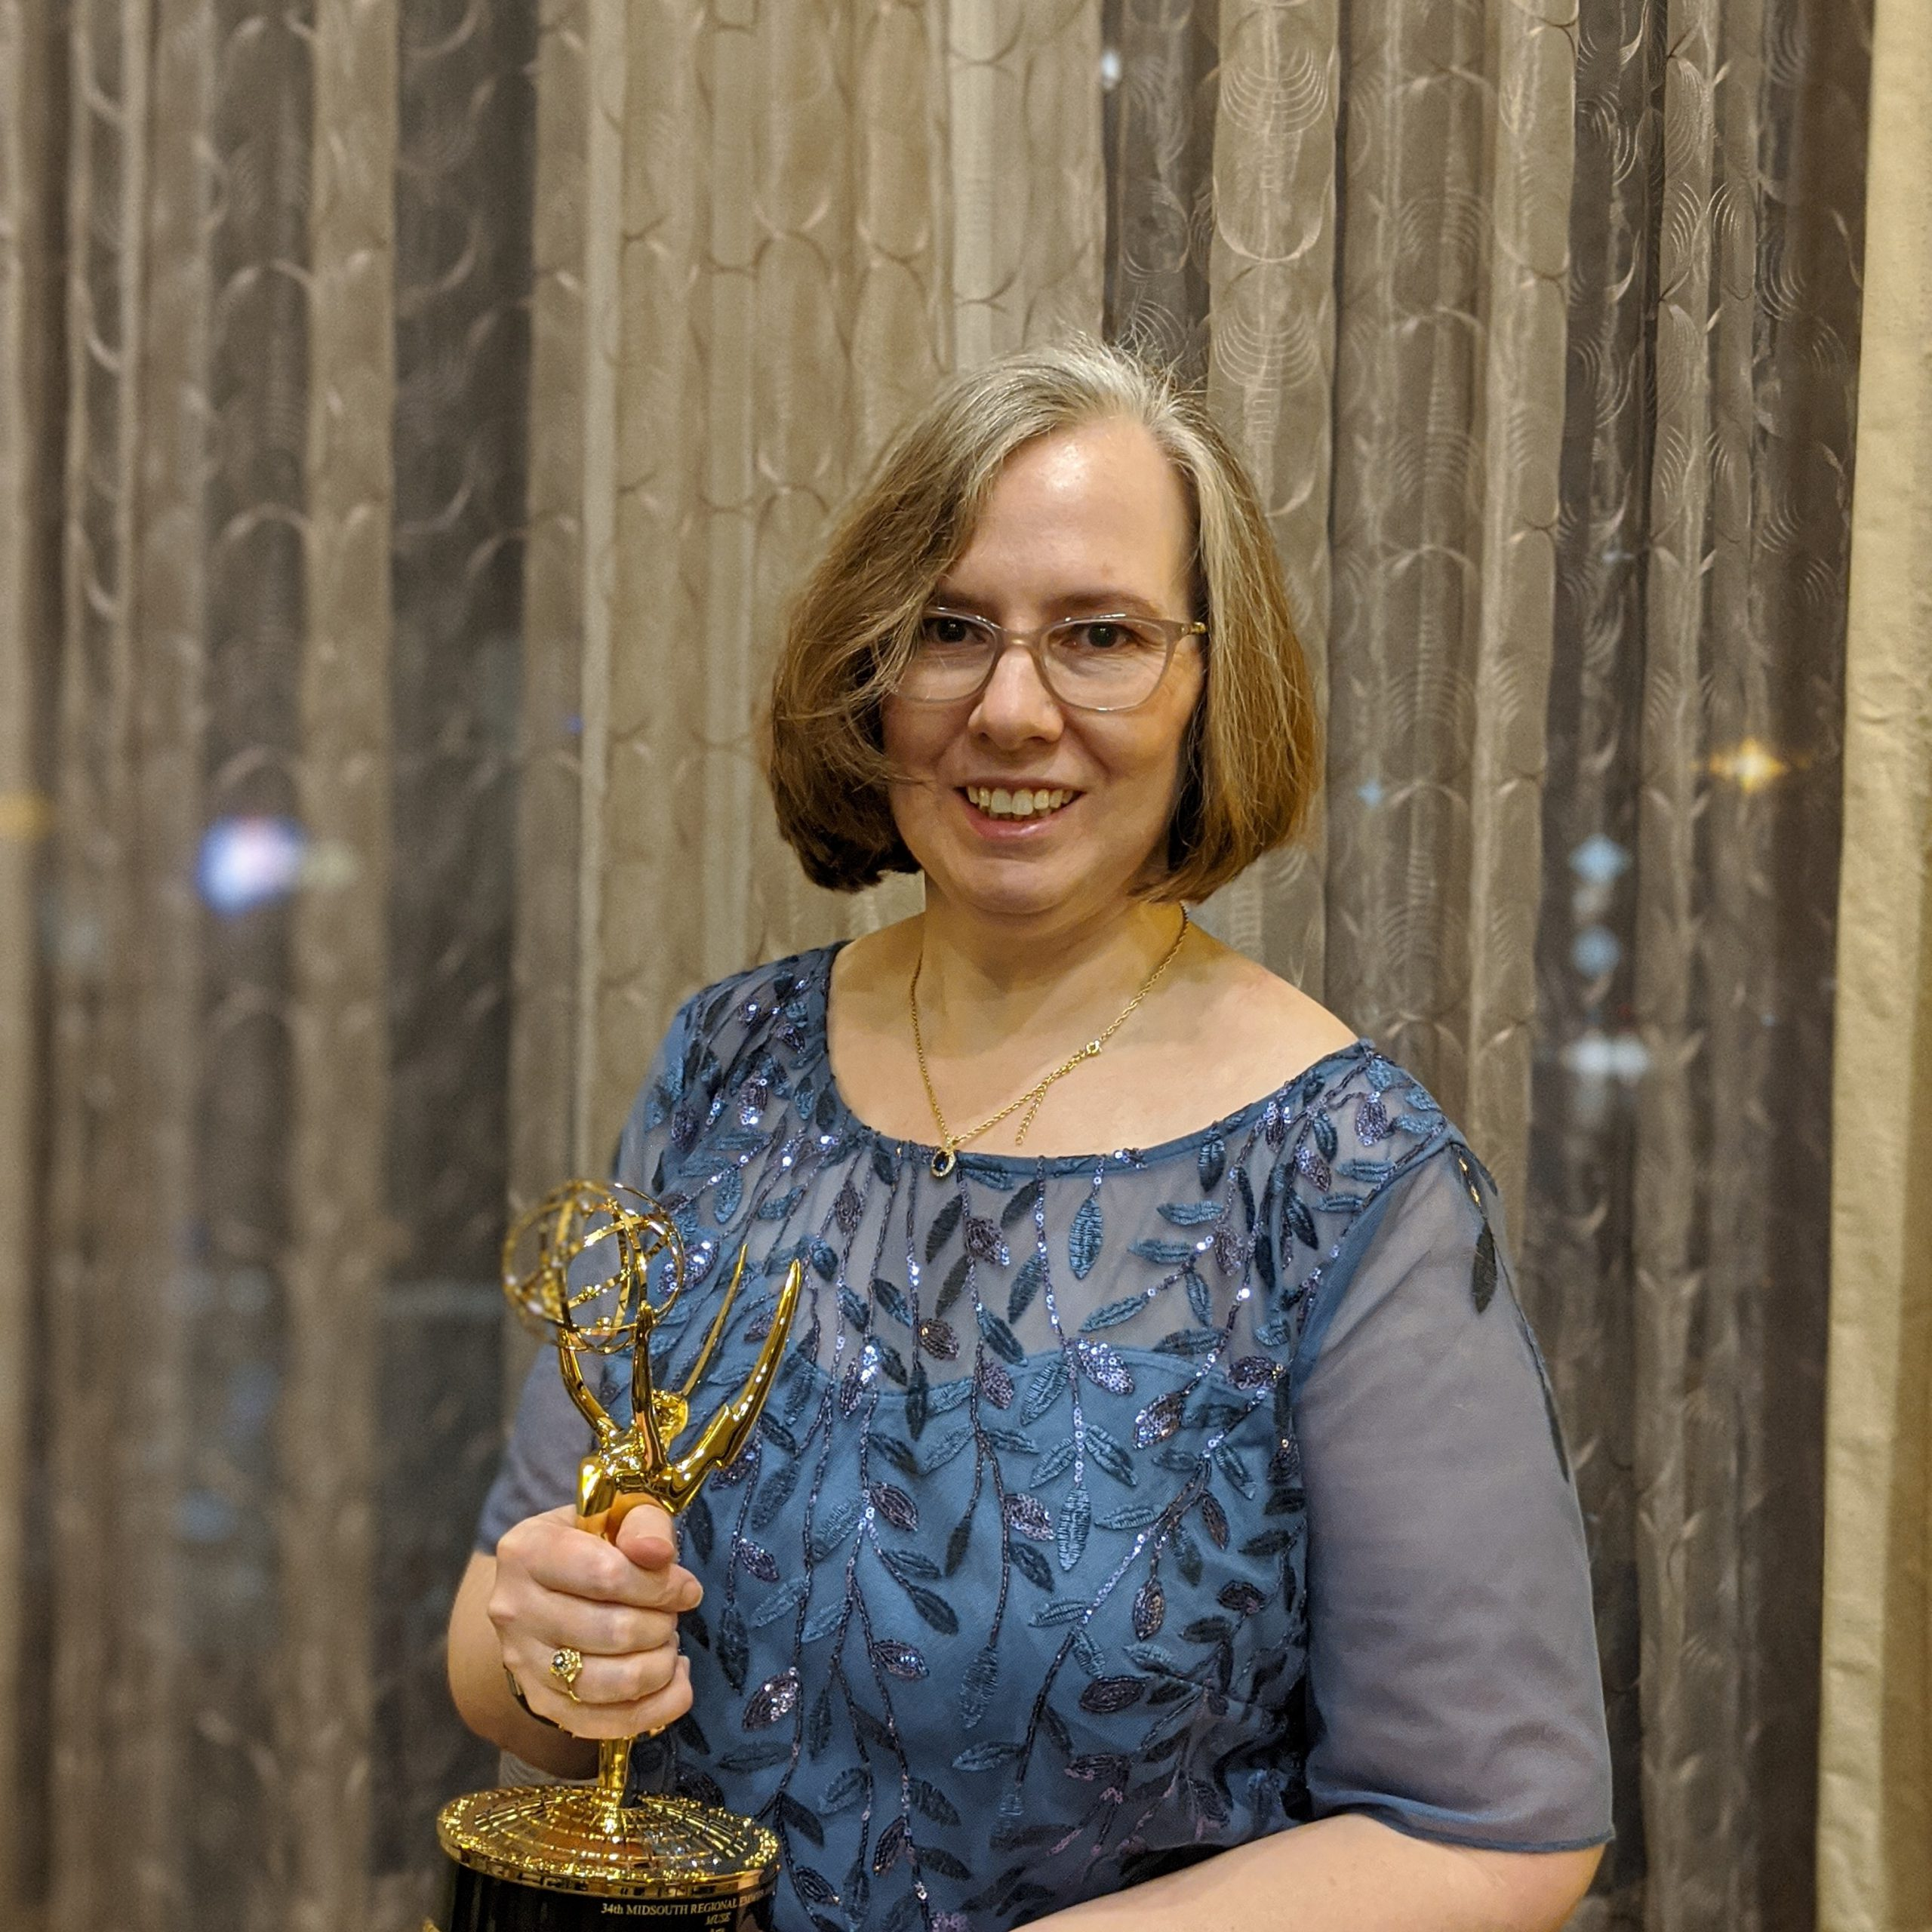 Alumni Katy Loebrich with her Emmy Award